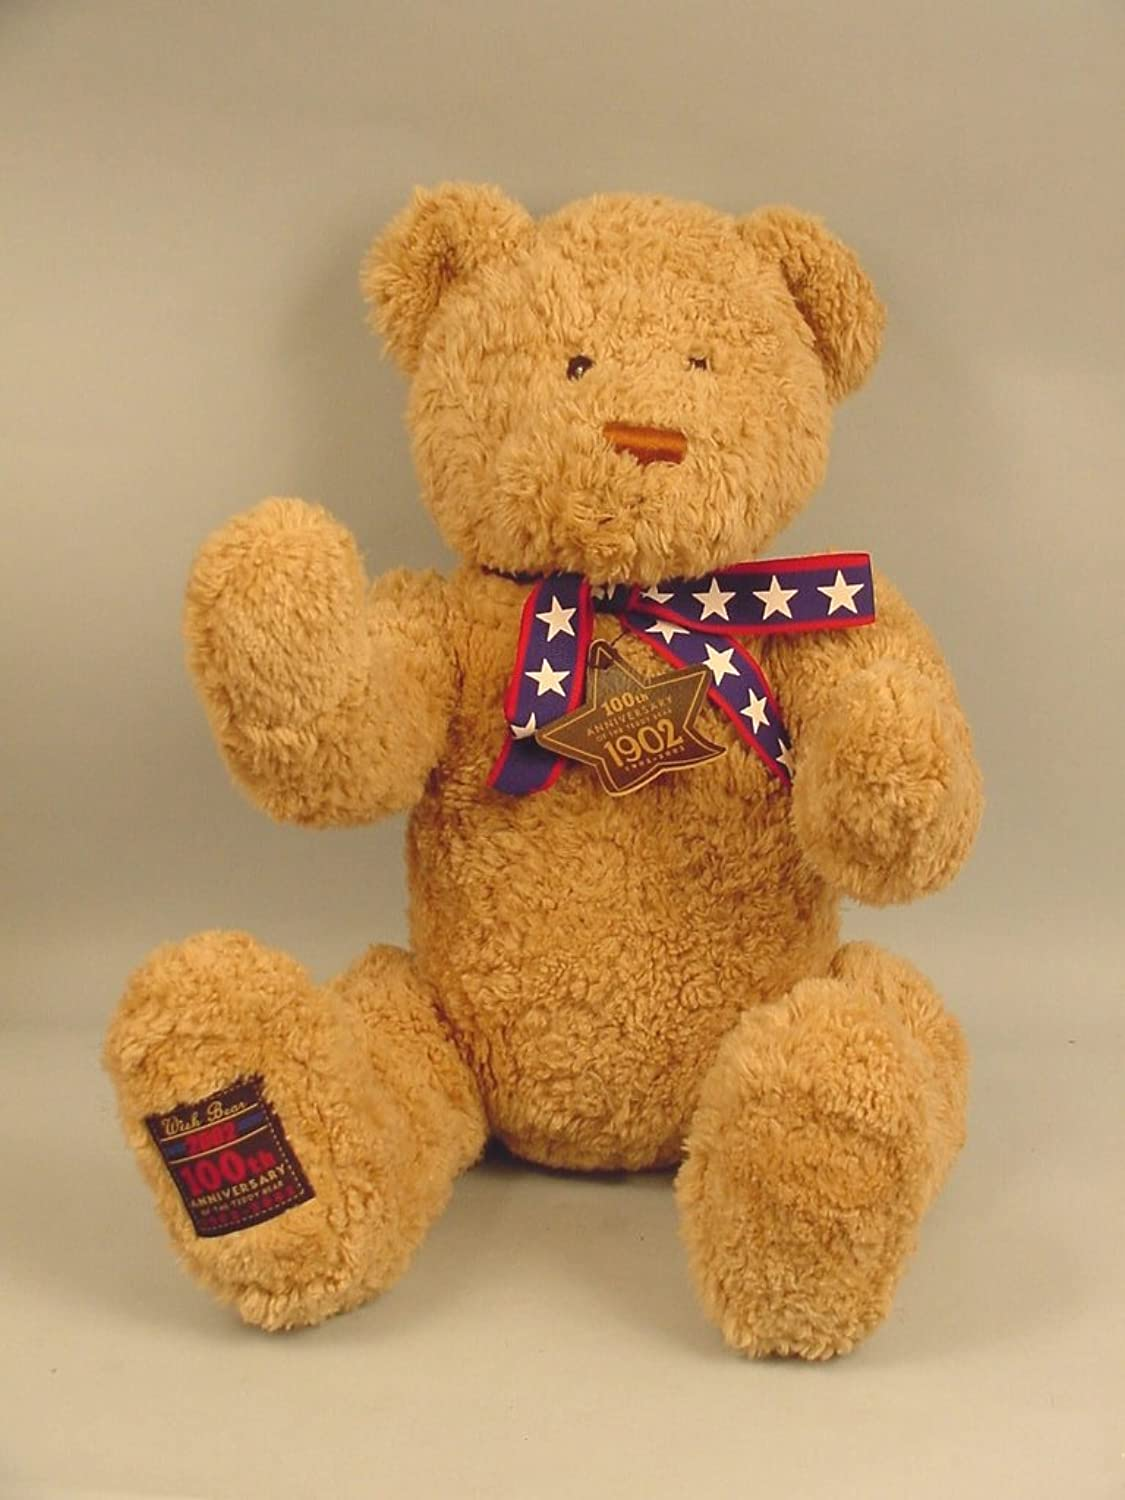 100th Anniversary Wish Bear 2002 by Gund May Department Store Exclusive - Hug...